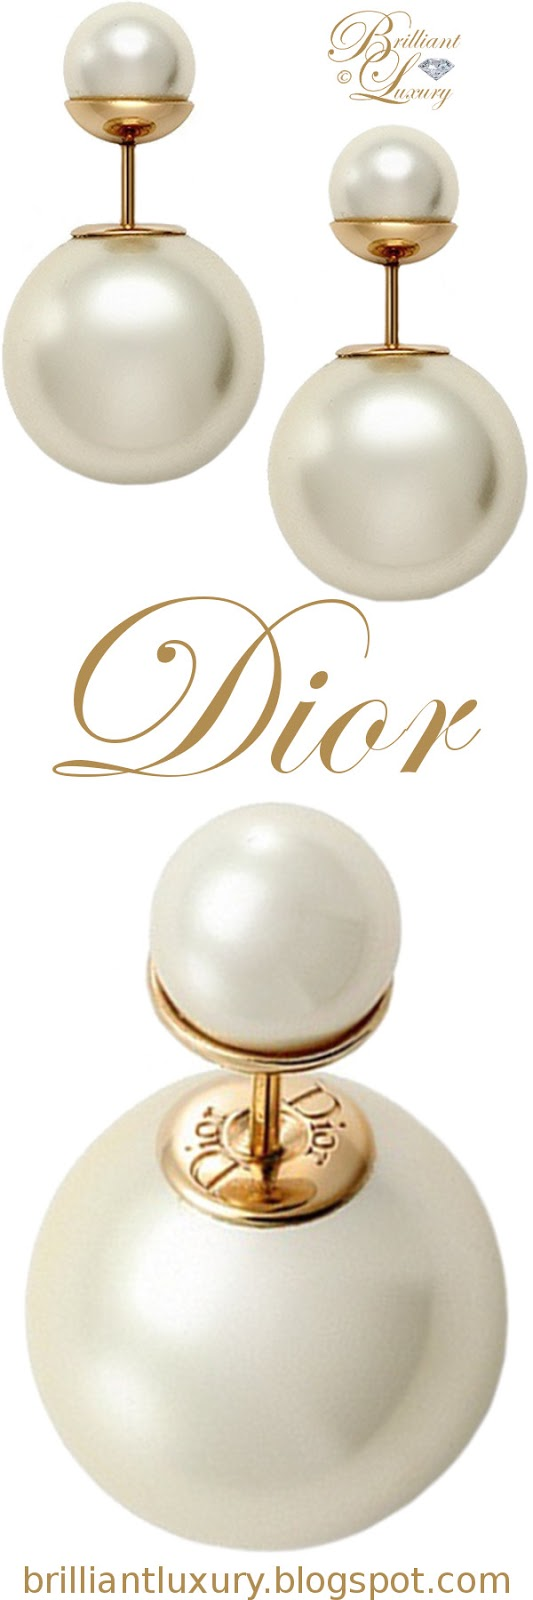 Brilliant Luxury ♦ Dior 'Mise en Dior' tribal-inspired gold earrings